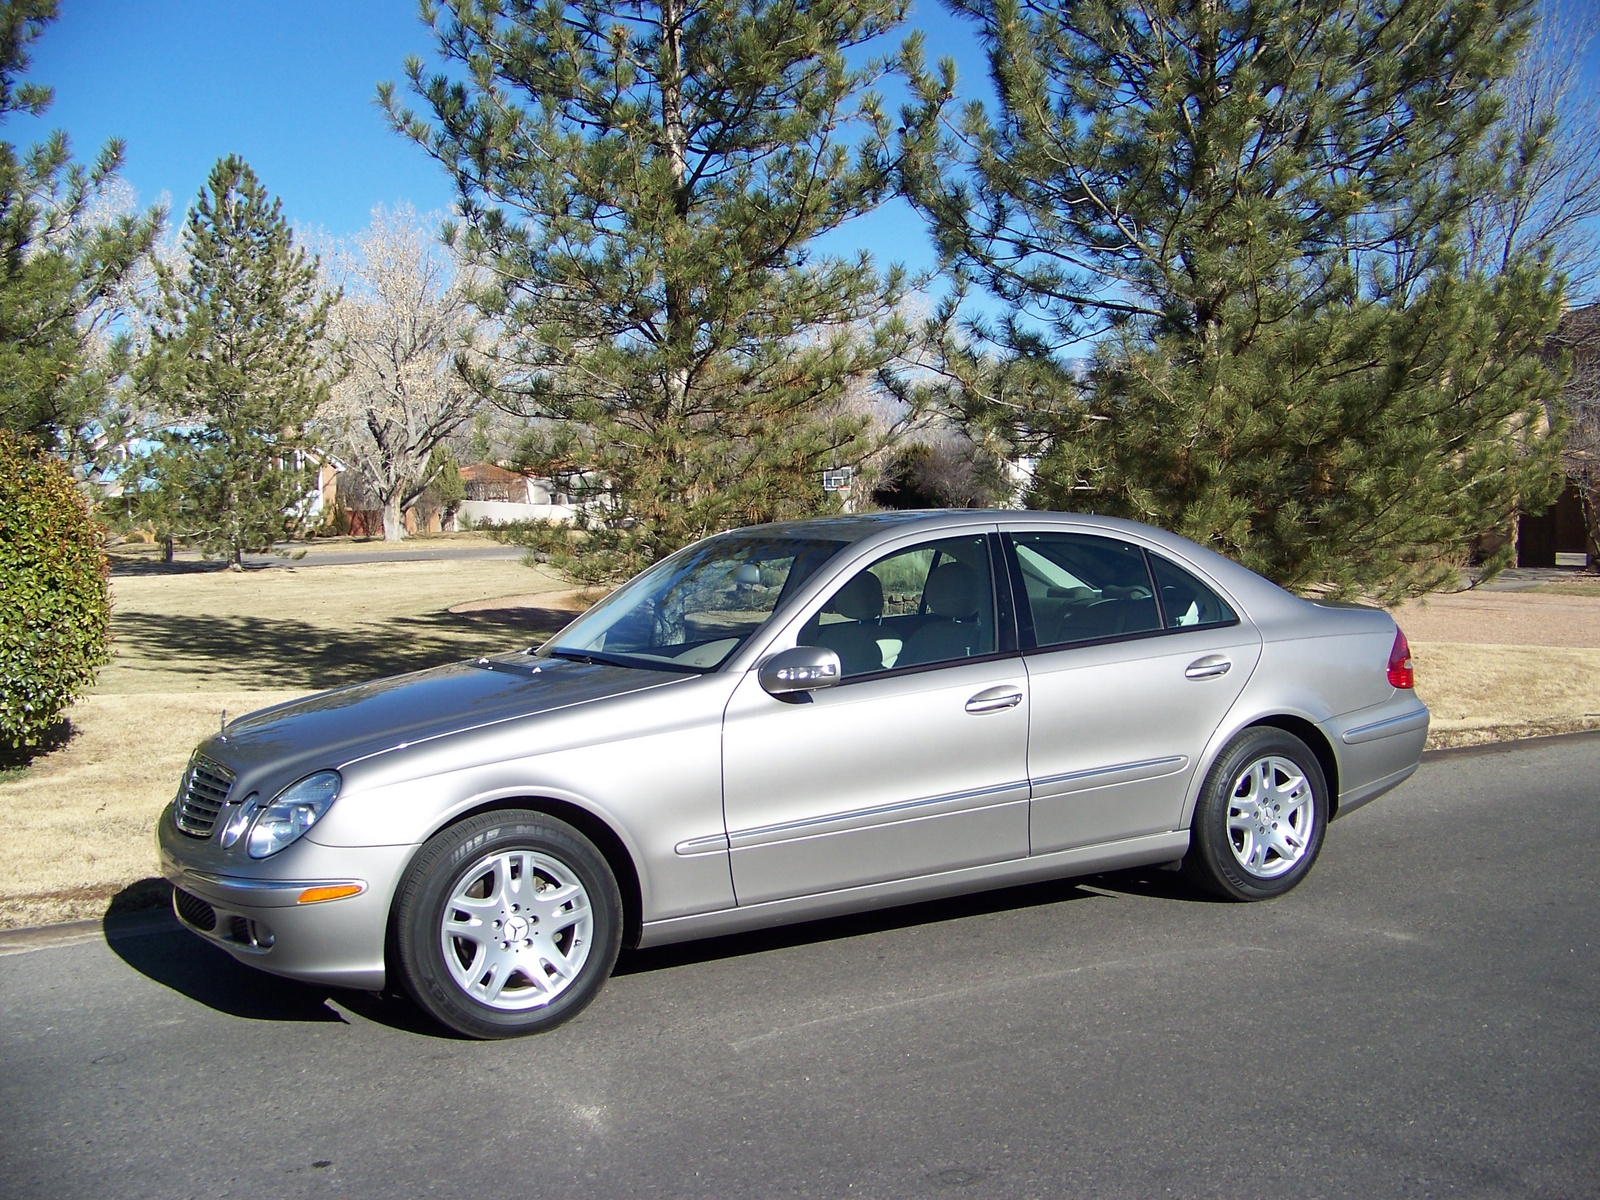 2005 mercedes benz e320 owners manual ggettquik for Mercedes benz e320 manual